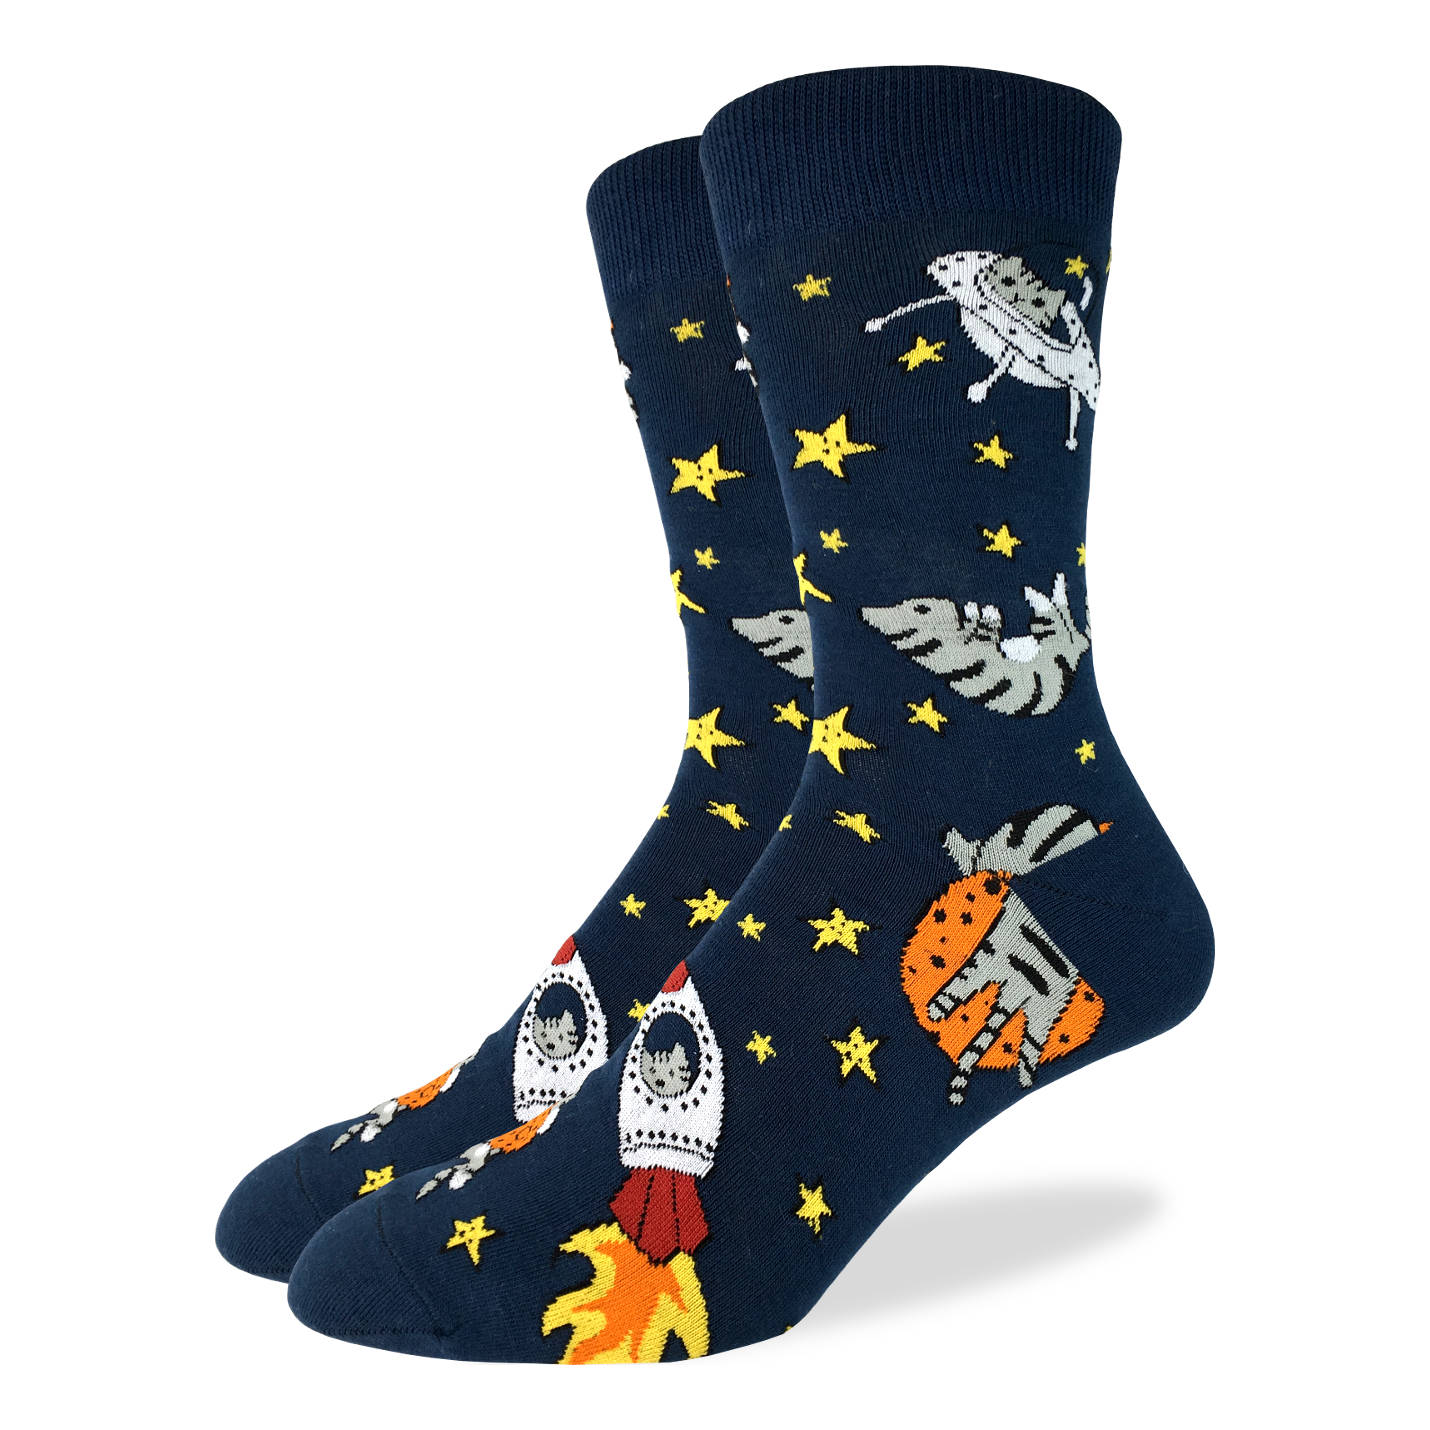 Men's Space Cat Socks - Good Luck Sock